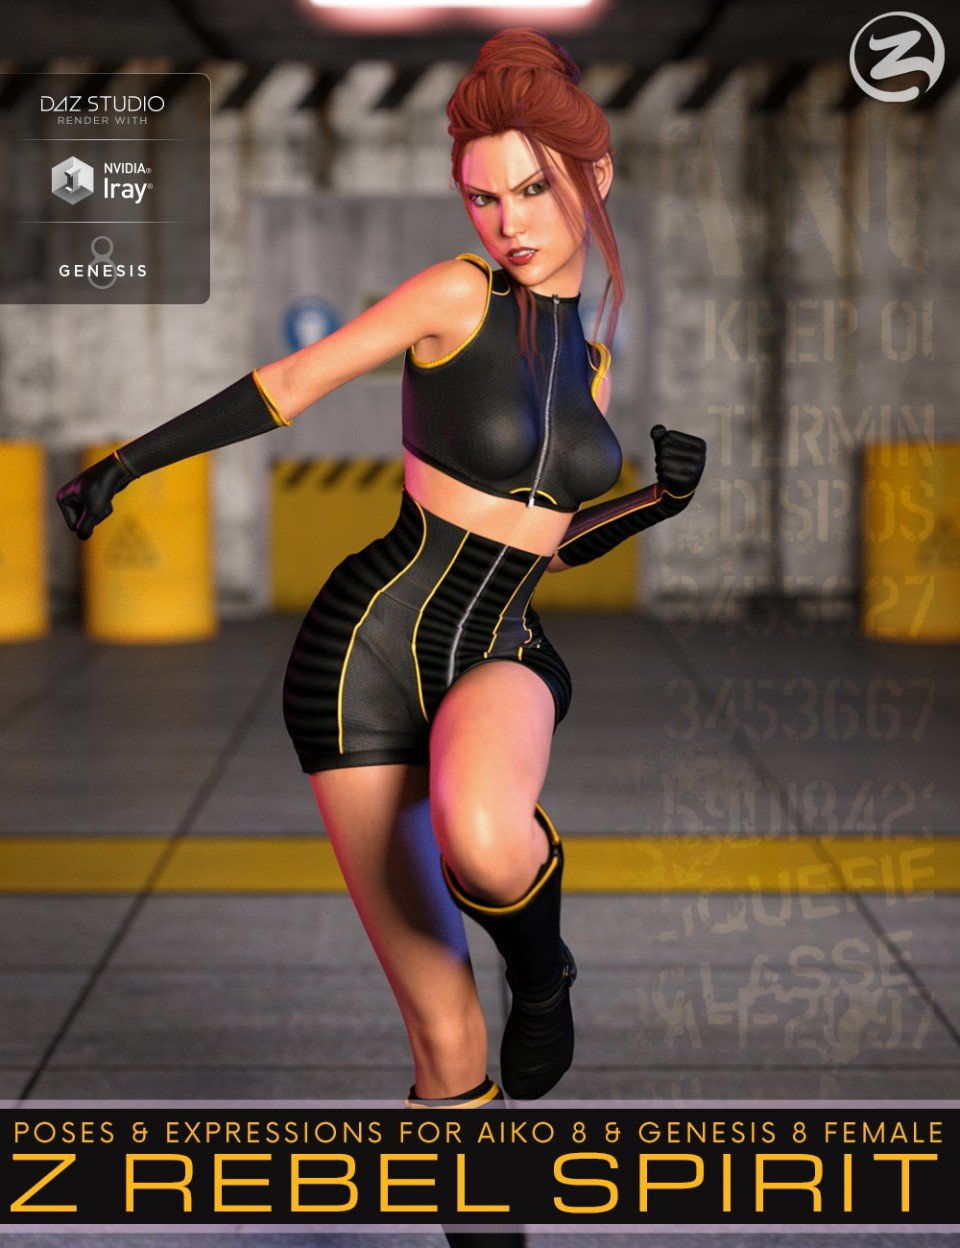 Z Rebel Spirit – Poses and Expressions for Aiko 8 and Genesis 8 Female_DAZ3D下载站